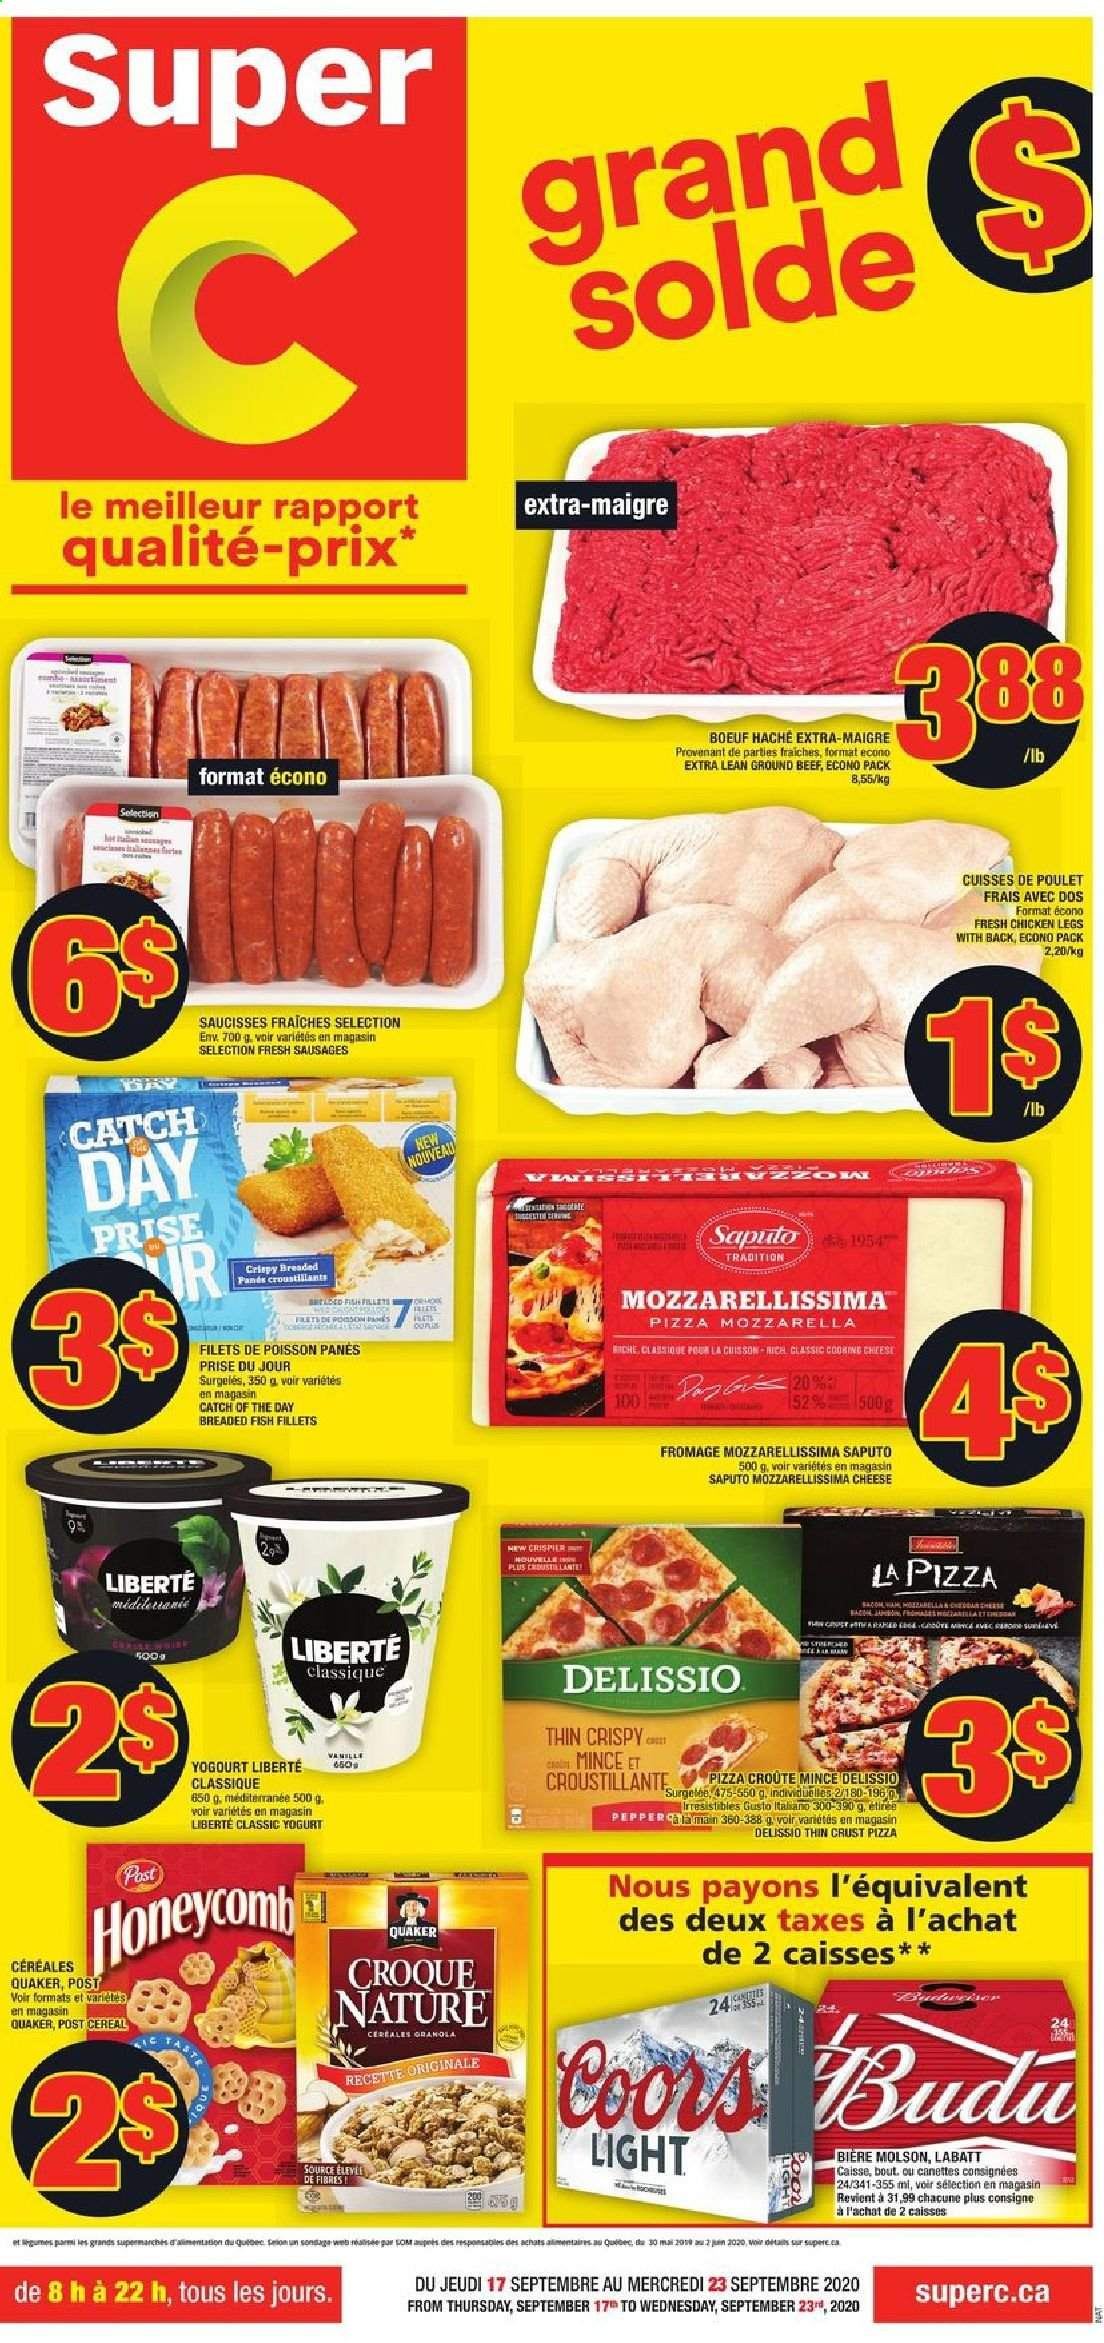 Super C Flyer - September 17, 2020 - September 23, 2020 - Sales products - beef meat, cereals, fish fillets, granola, ground beef, sausages, pizza, chicken, chicken legs, cheese, Coors, fish. Page 1.